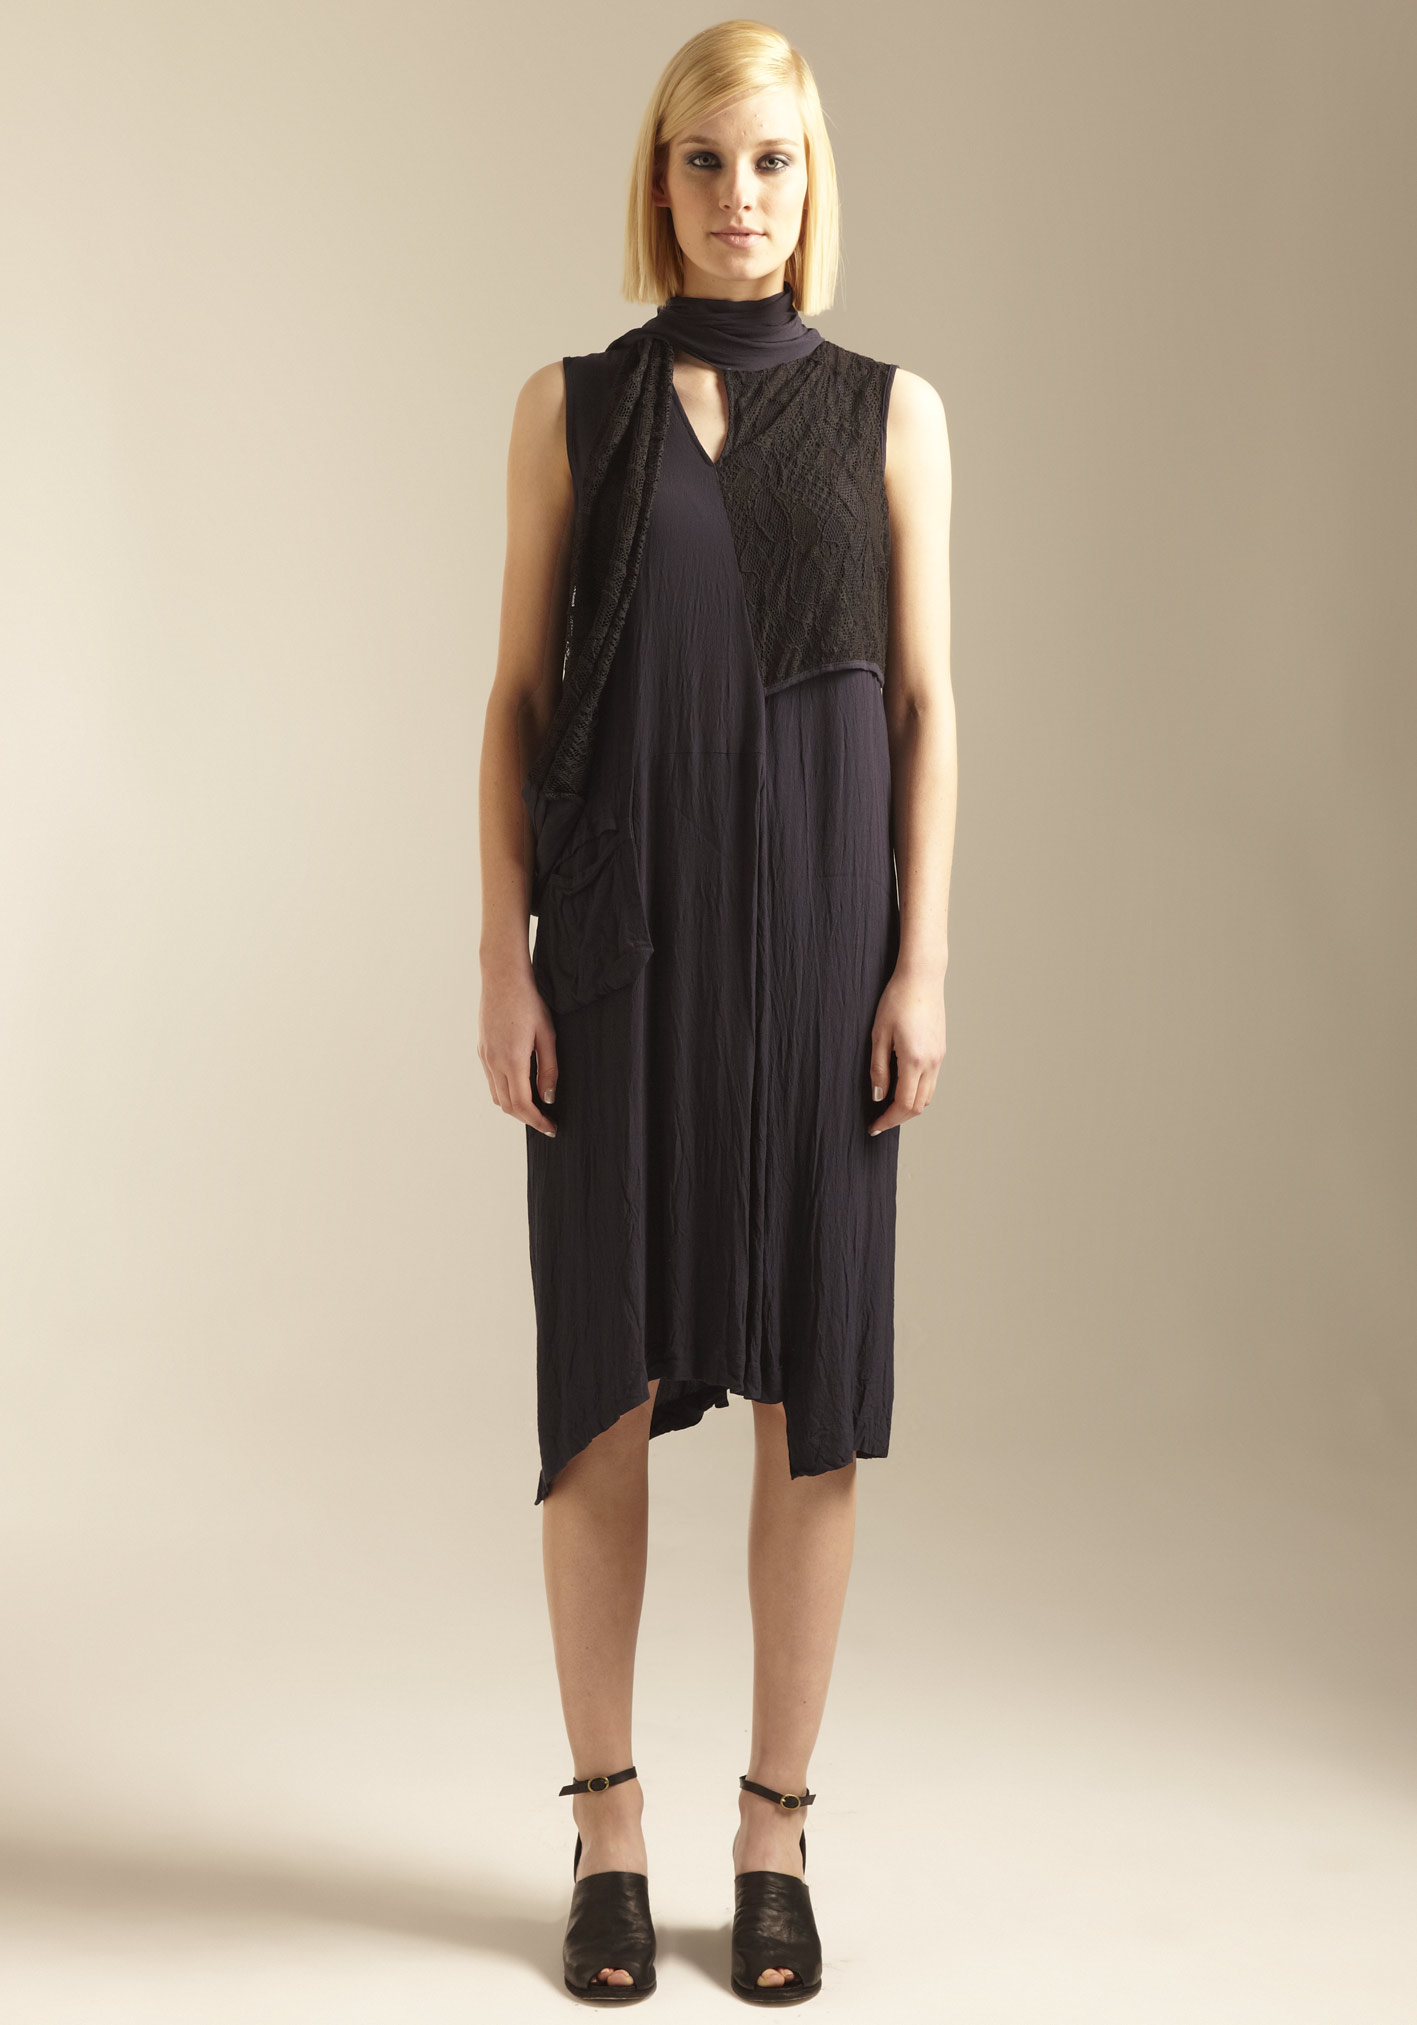 buy the latest Lace Overlay Dress With Neck Scarf online